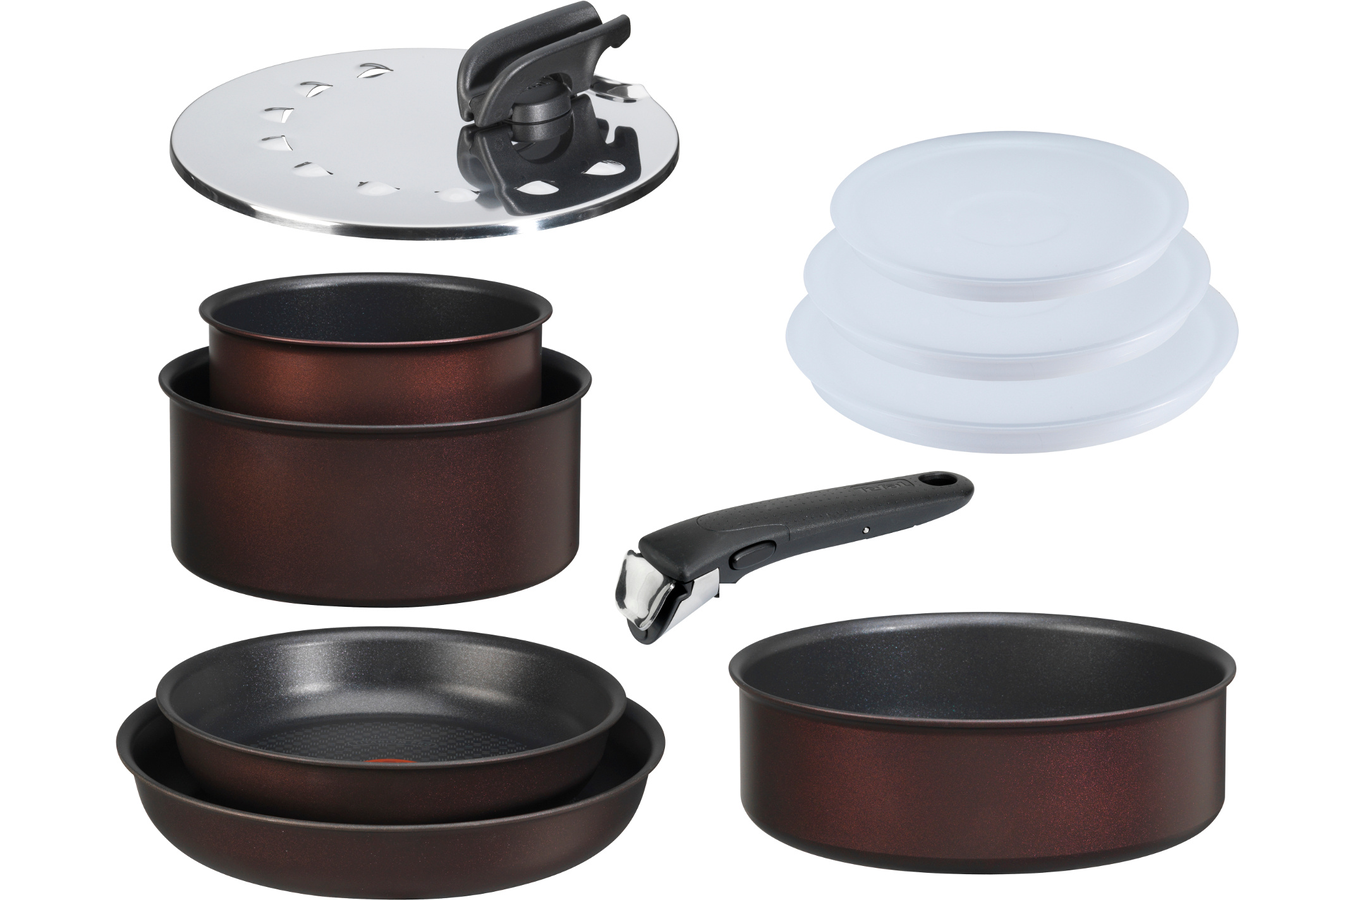 Poele sauteuse tefal ingenio hard titanium 10 pieces for Poele de cuisine